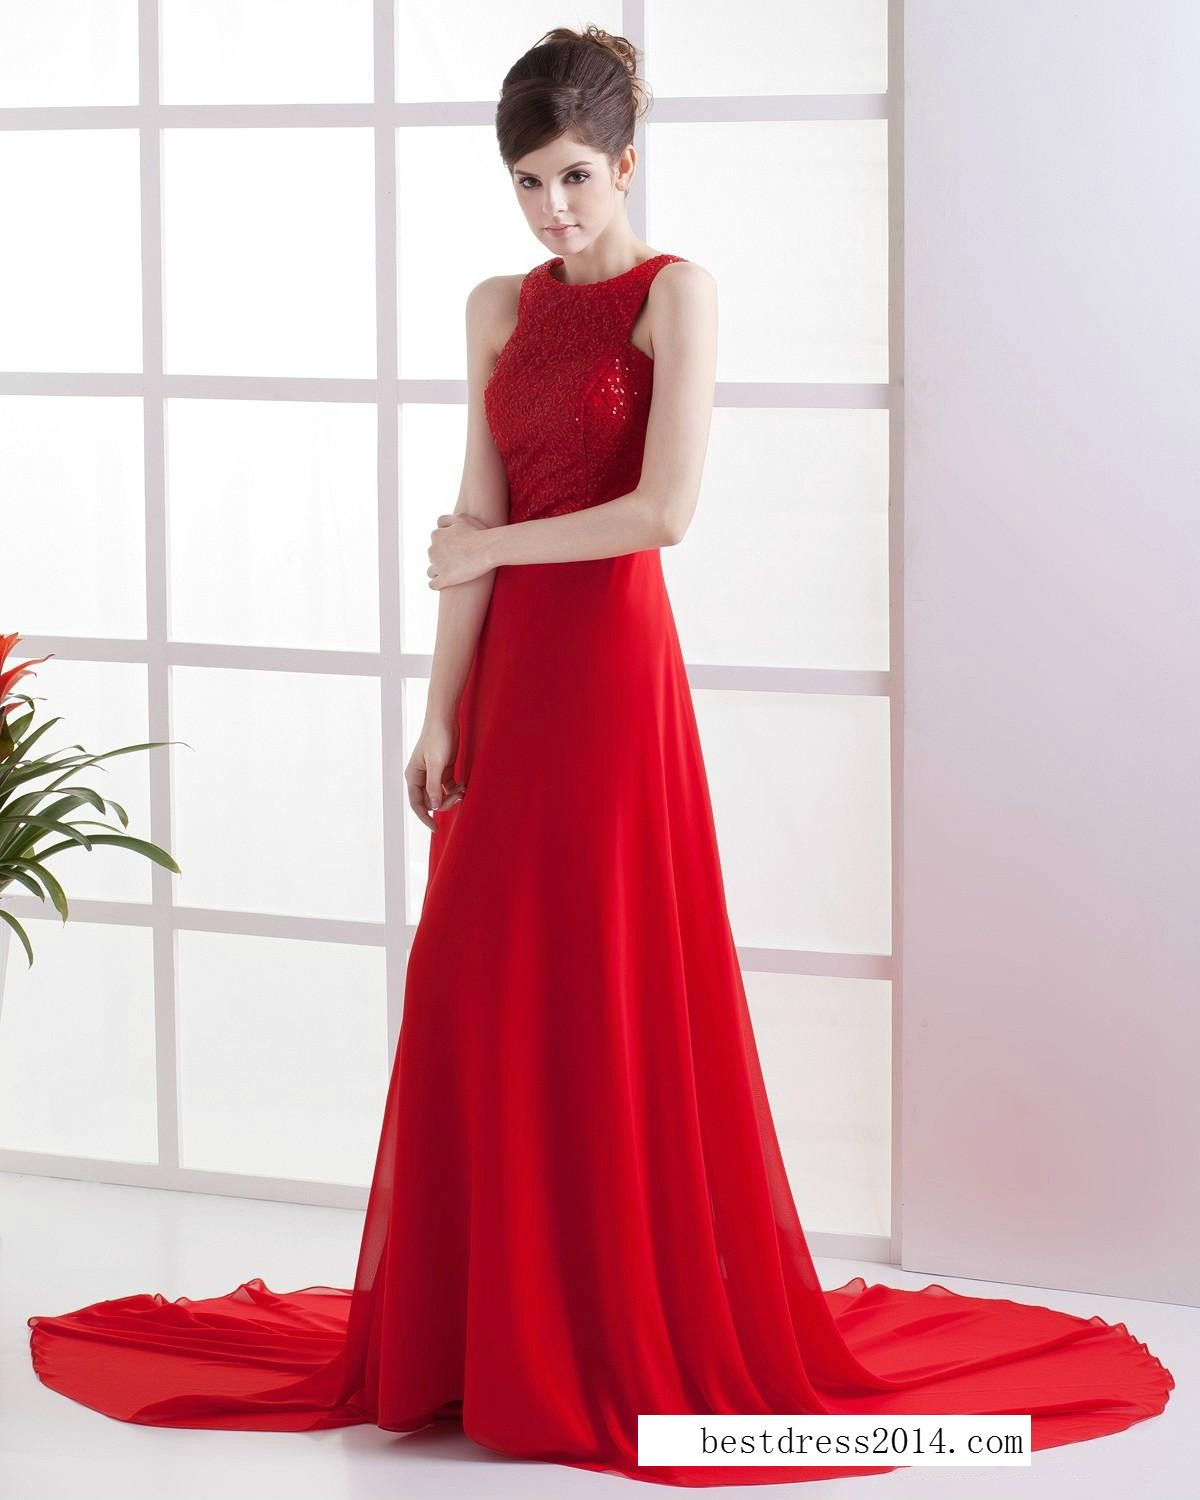 Red prom dress clothes pinterest prom dream prom and prom